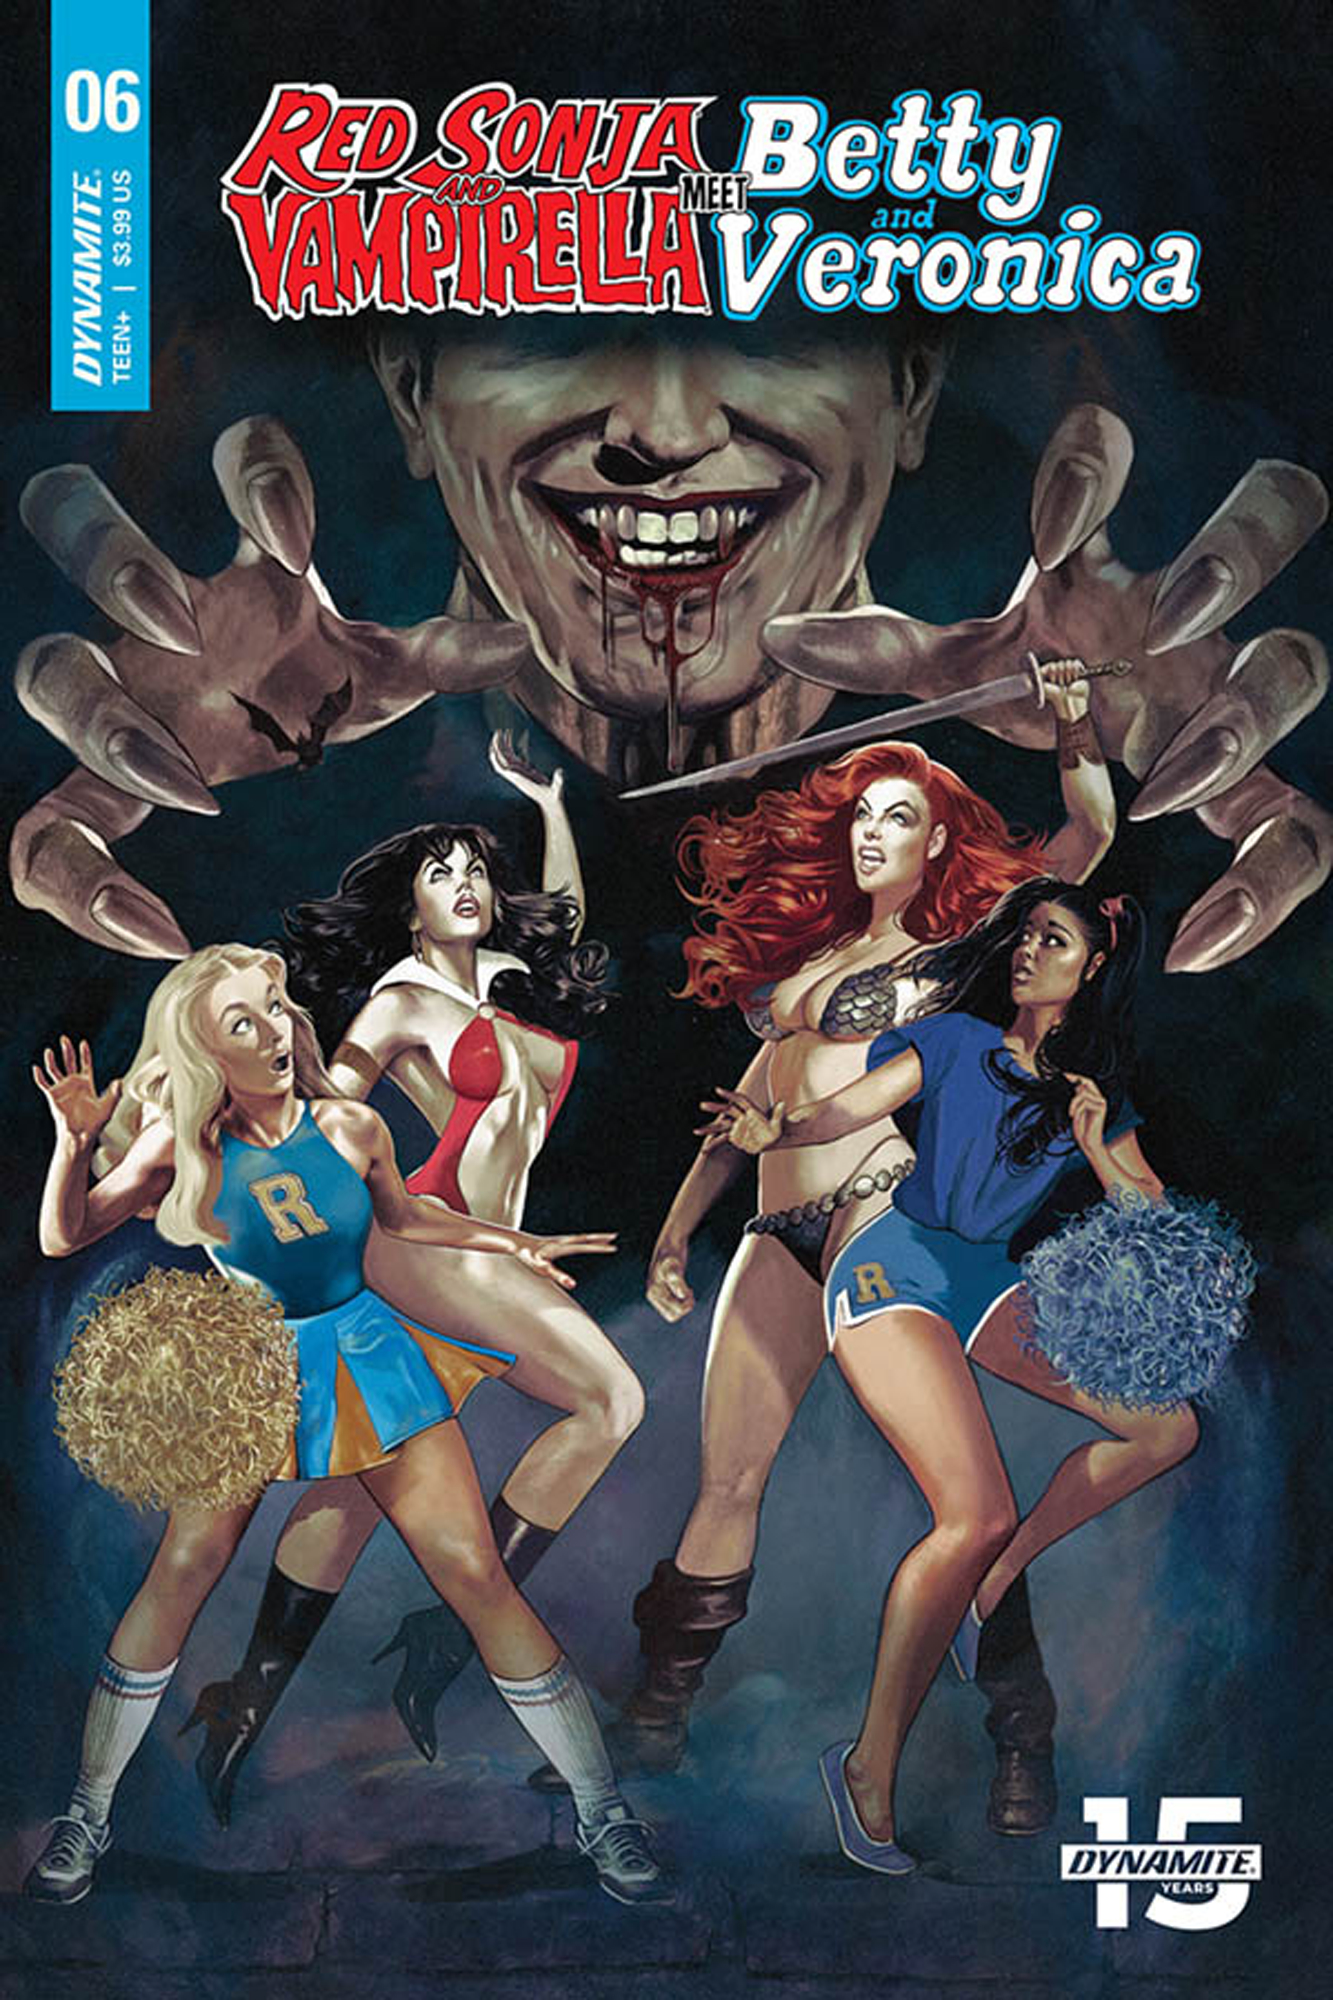 RED SONJA VAMPIRELLA BETTY VERONICA #6 CVR A DALTON